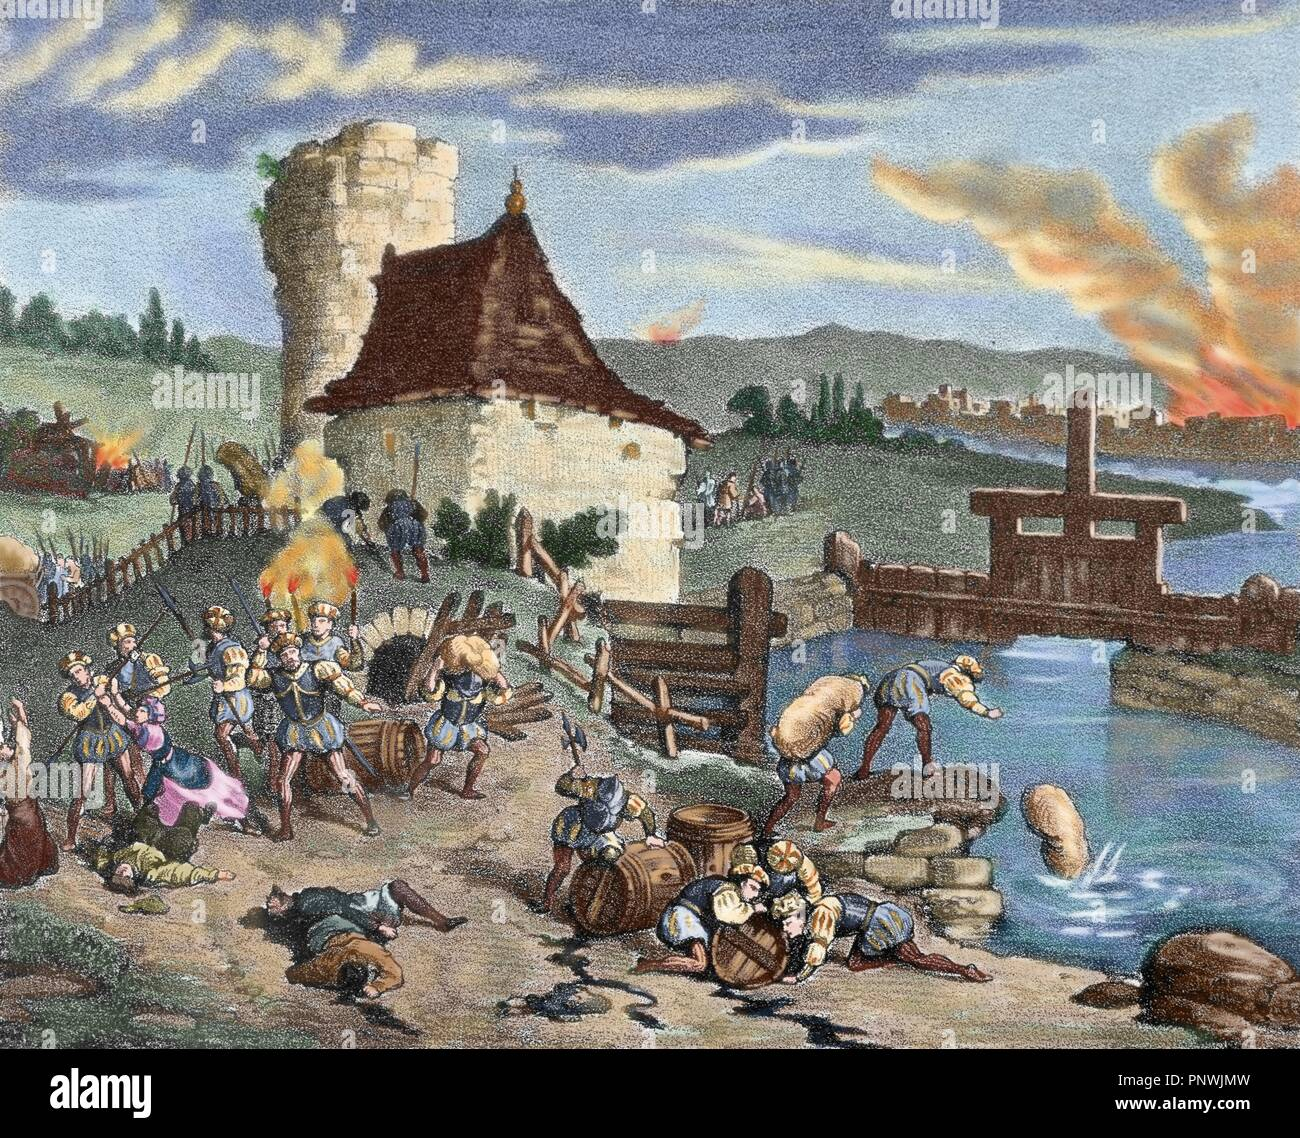 Fires and looting by the German reformer, Thomas Muntzer (1491-1525) and  his people during the rebellion. Colored engraving. 19th century.